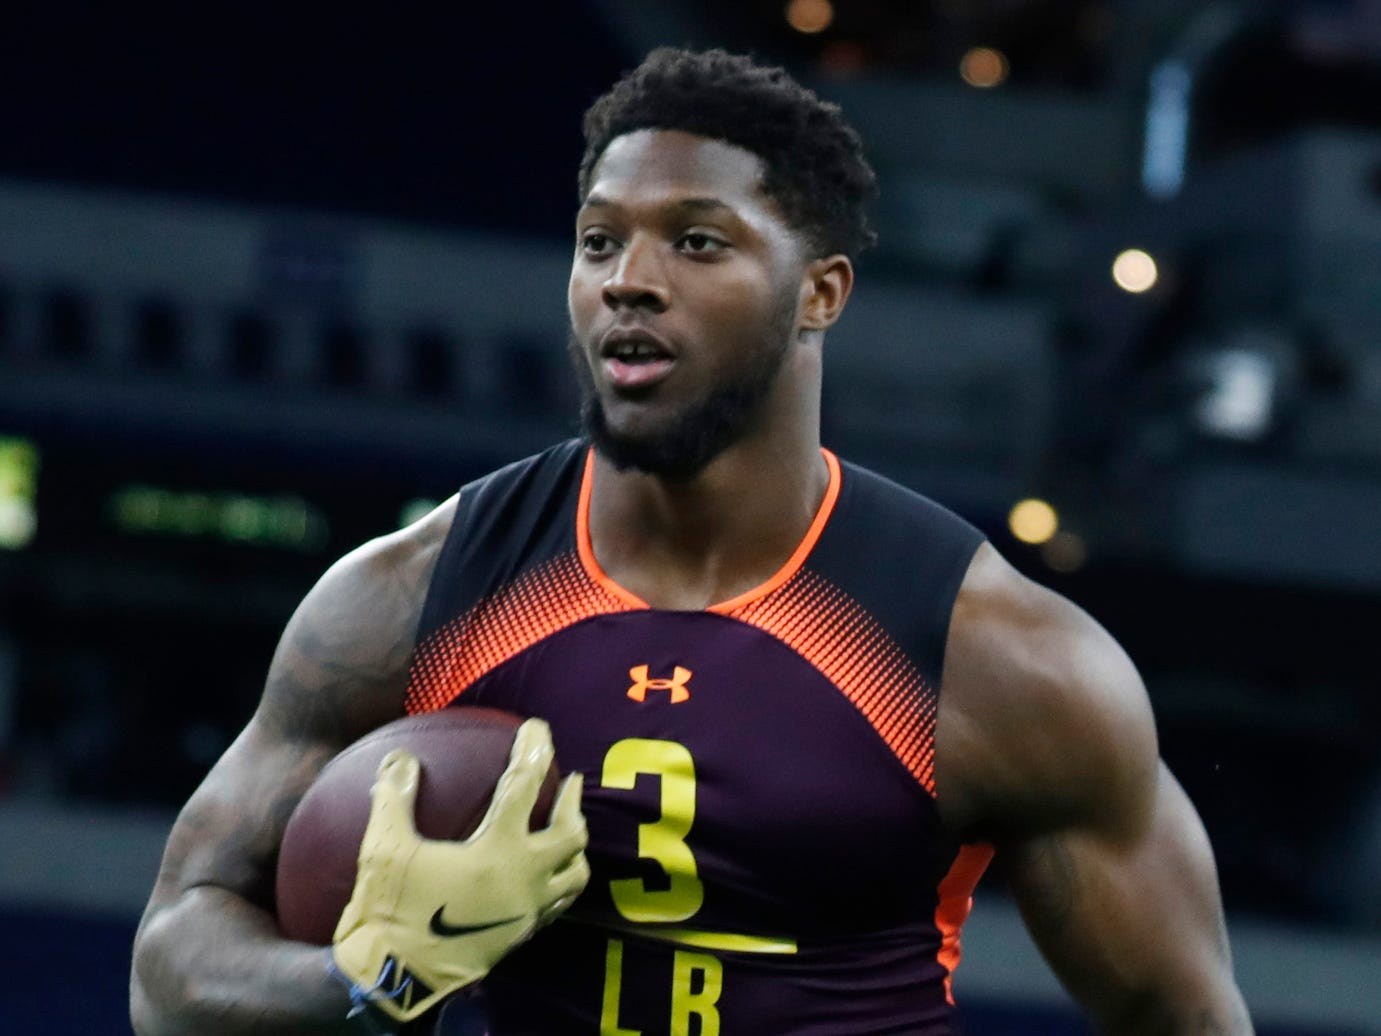 3. New York Jets: OLB Josh Allen, Kentucky – Anthony Barr bailed on the Jets to return to Minnesota, so New York turns to Allen to fill its pass-rush void.